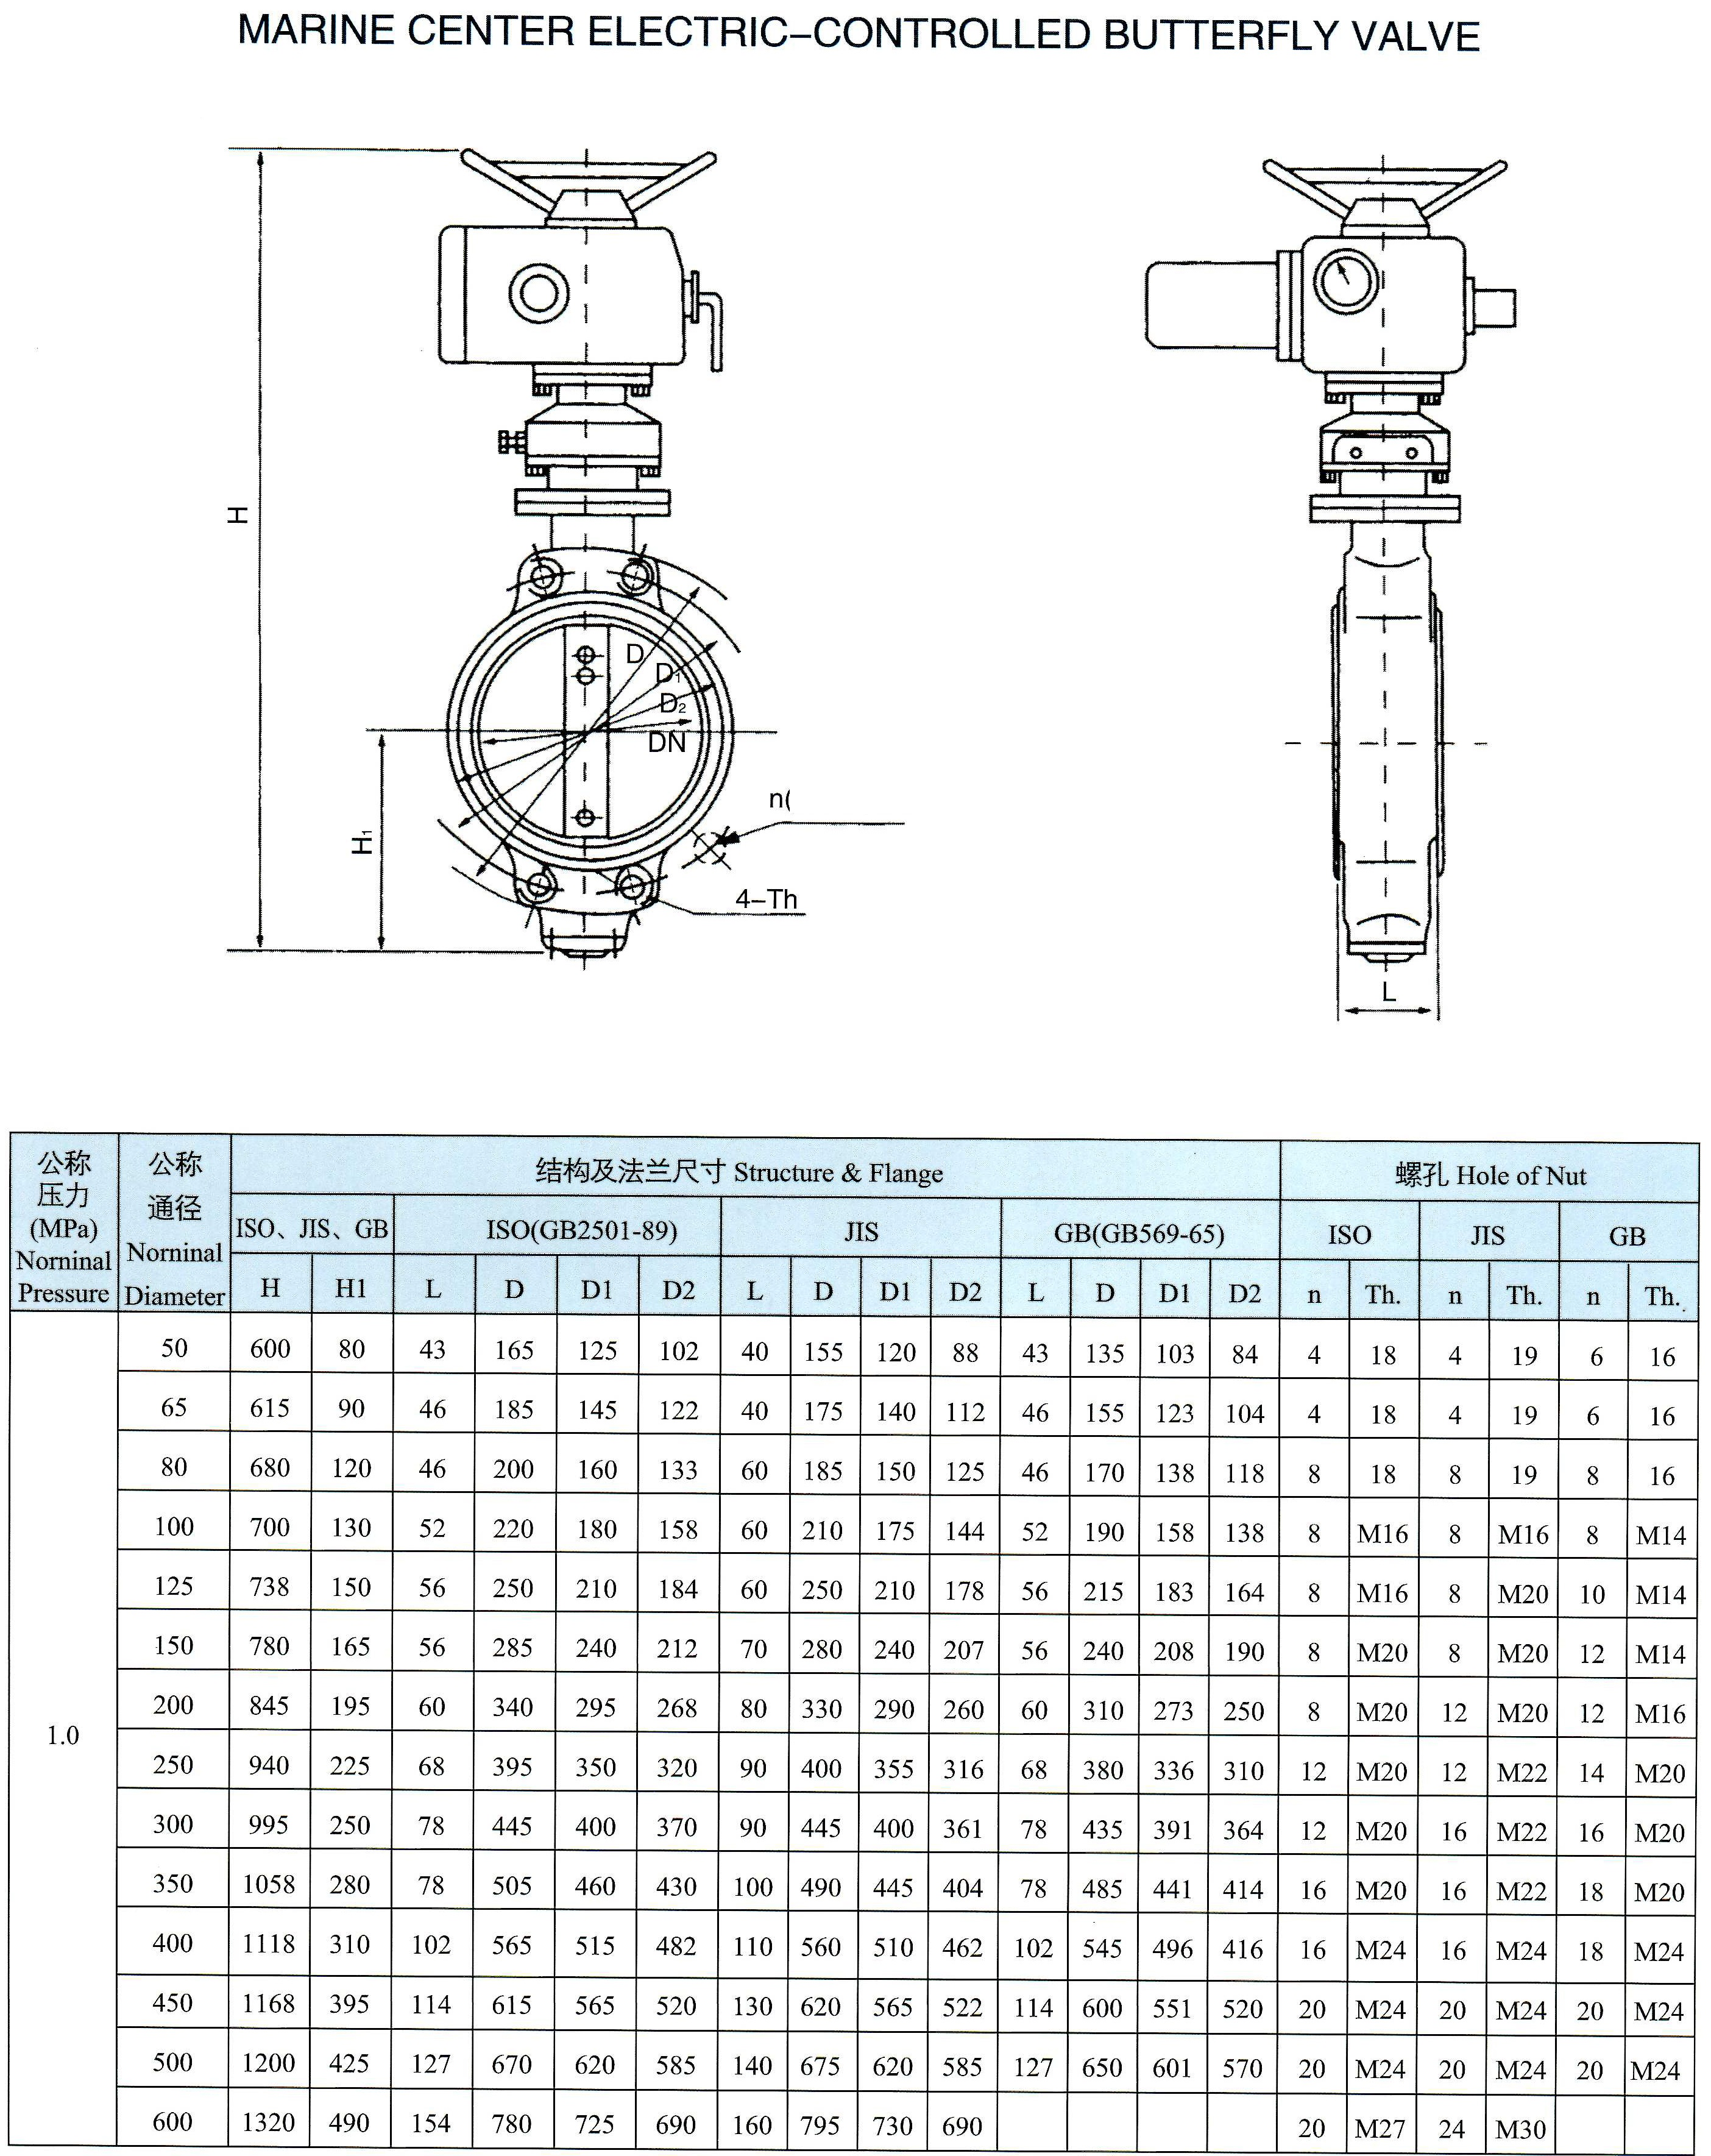 marine center electric-controlled butterfly valve